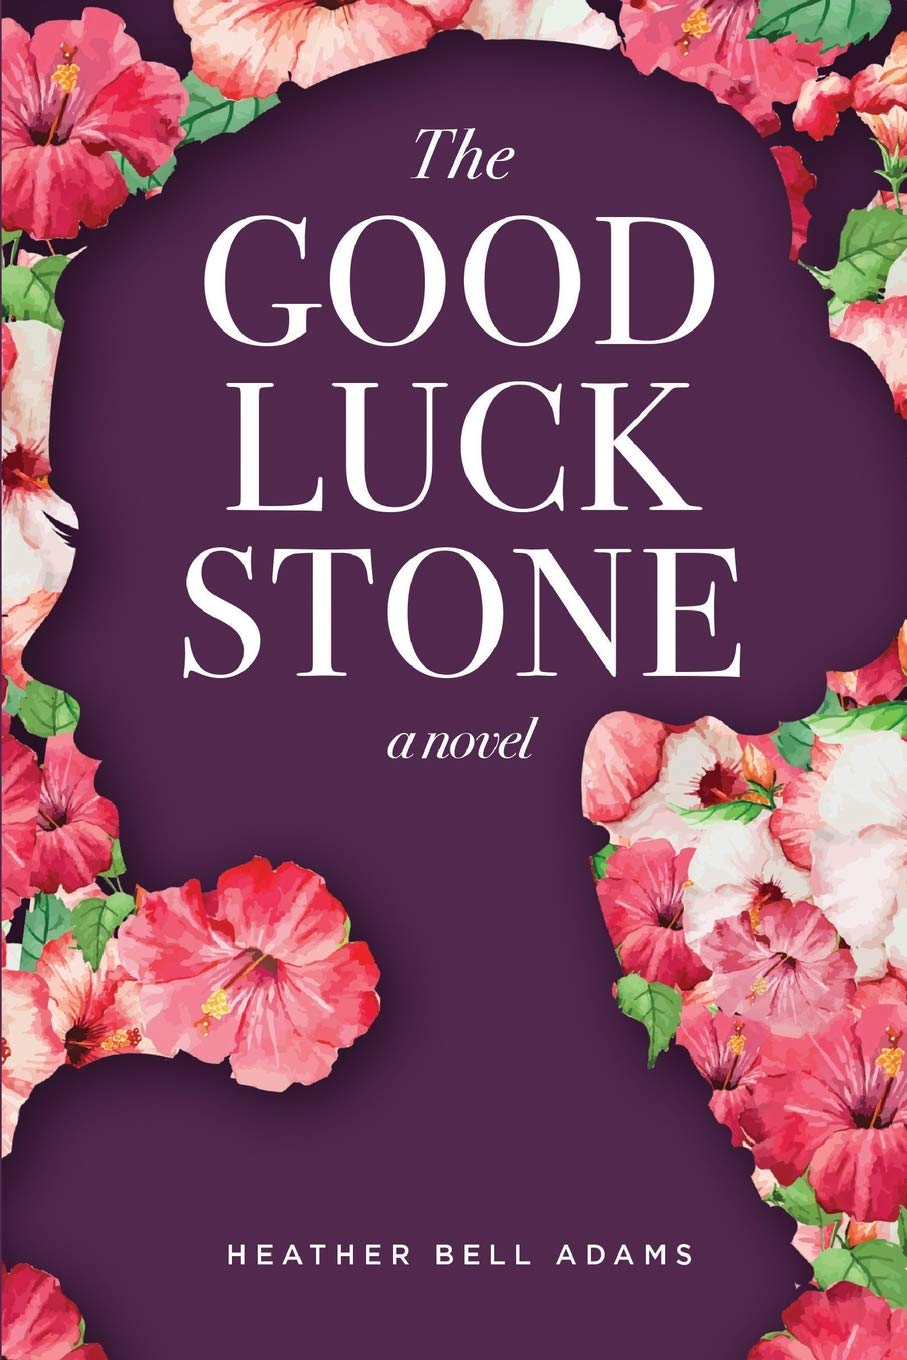 The Good Luck Stone